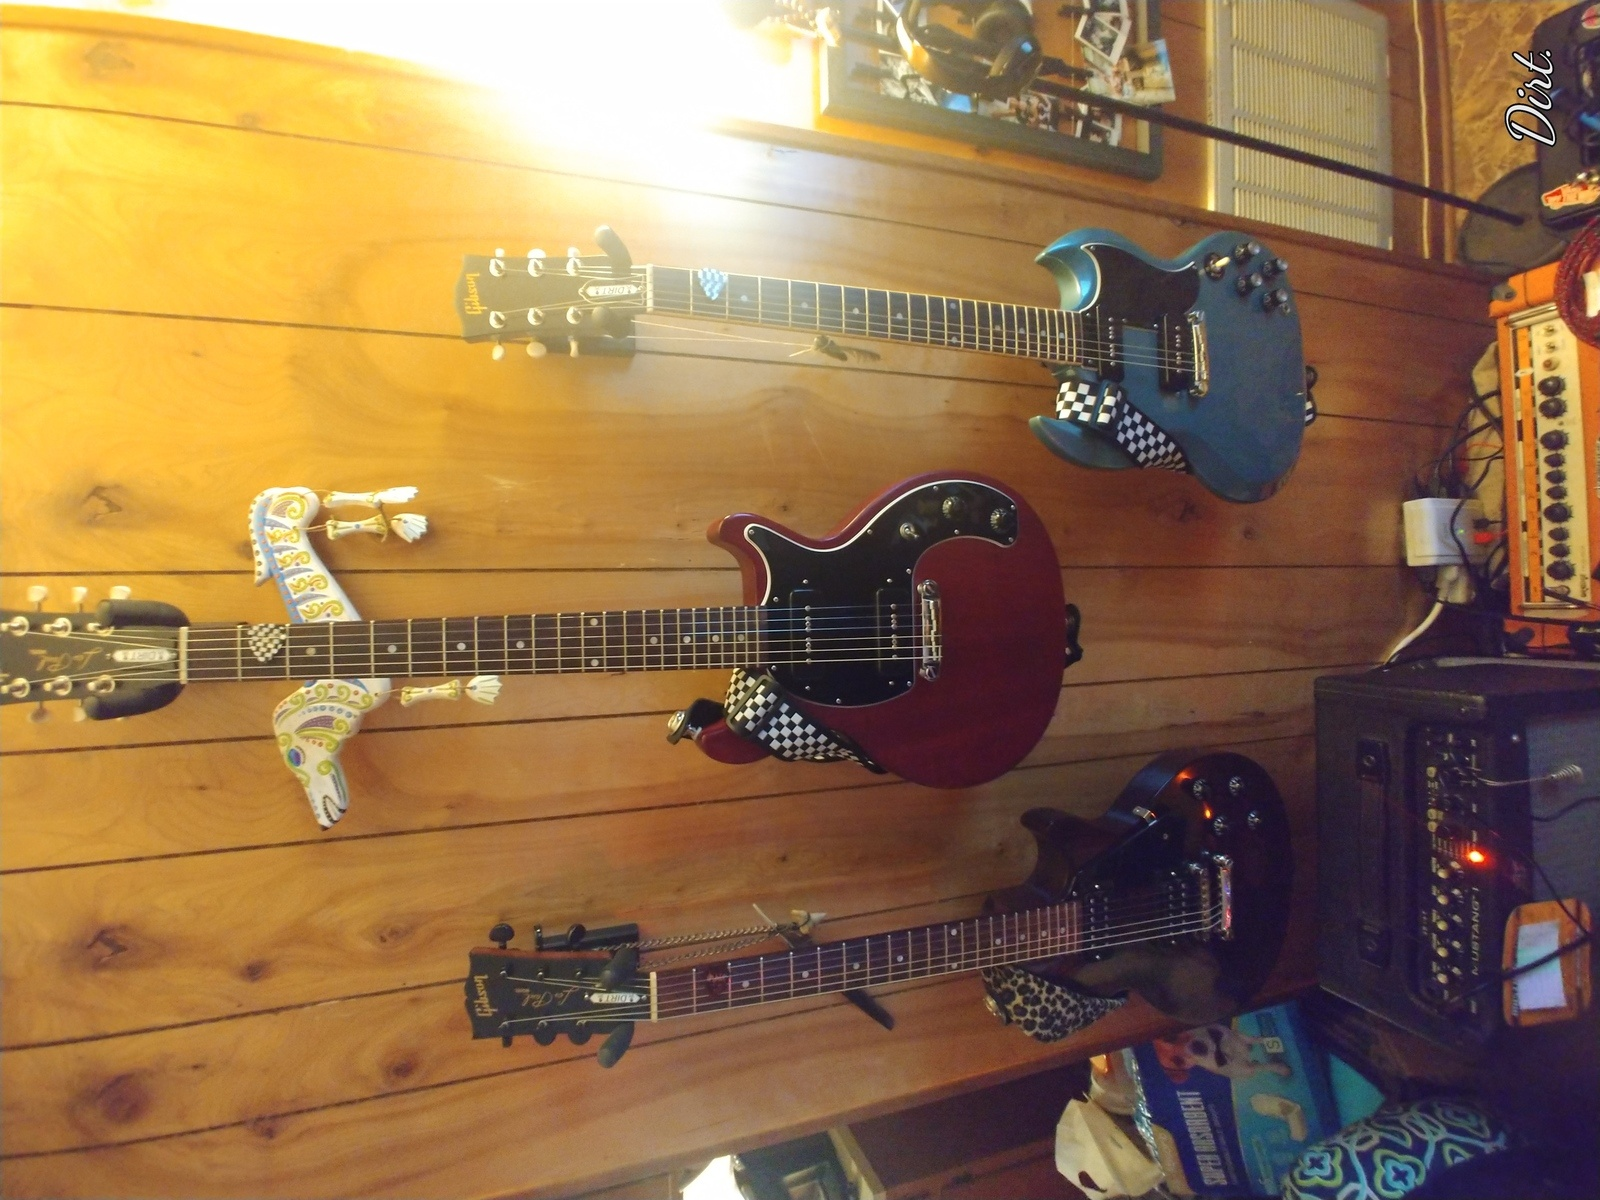 Photo of Gibson Les Paul Special Double-Cut Electric Guitar and more gear